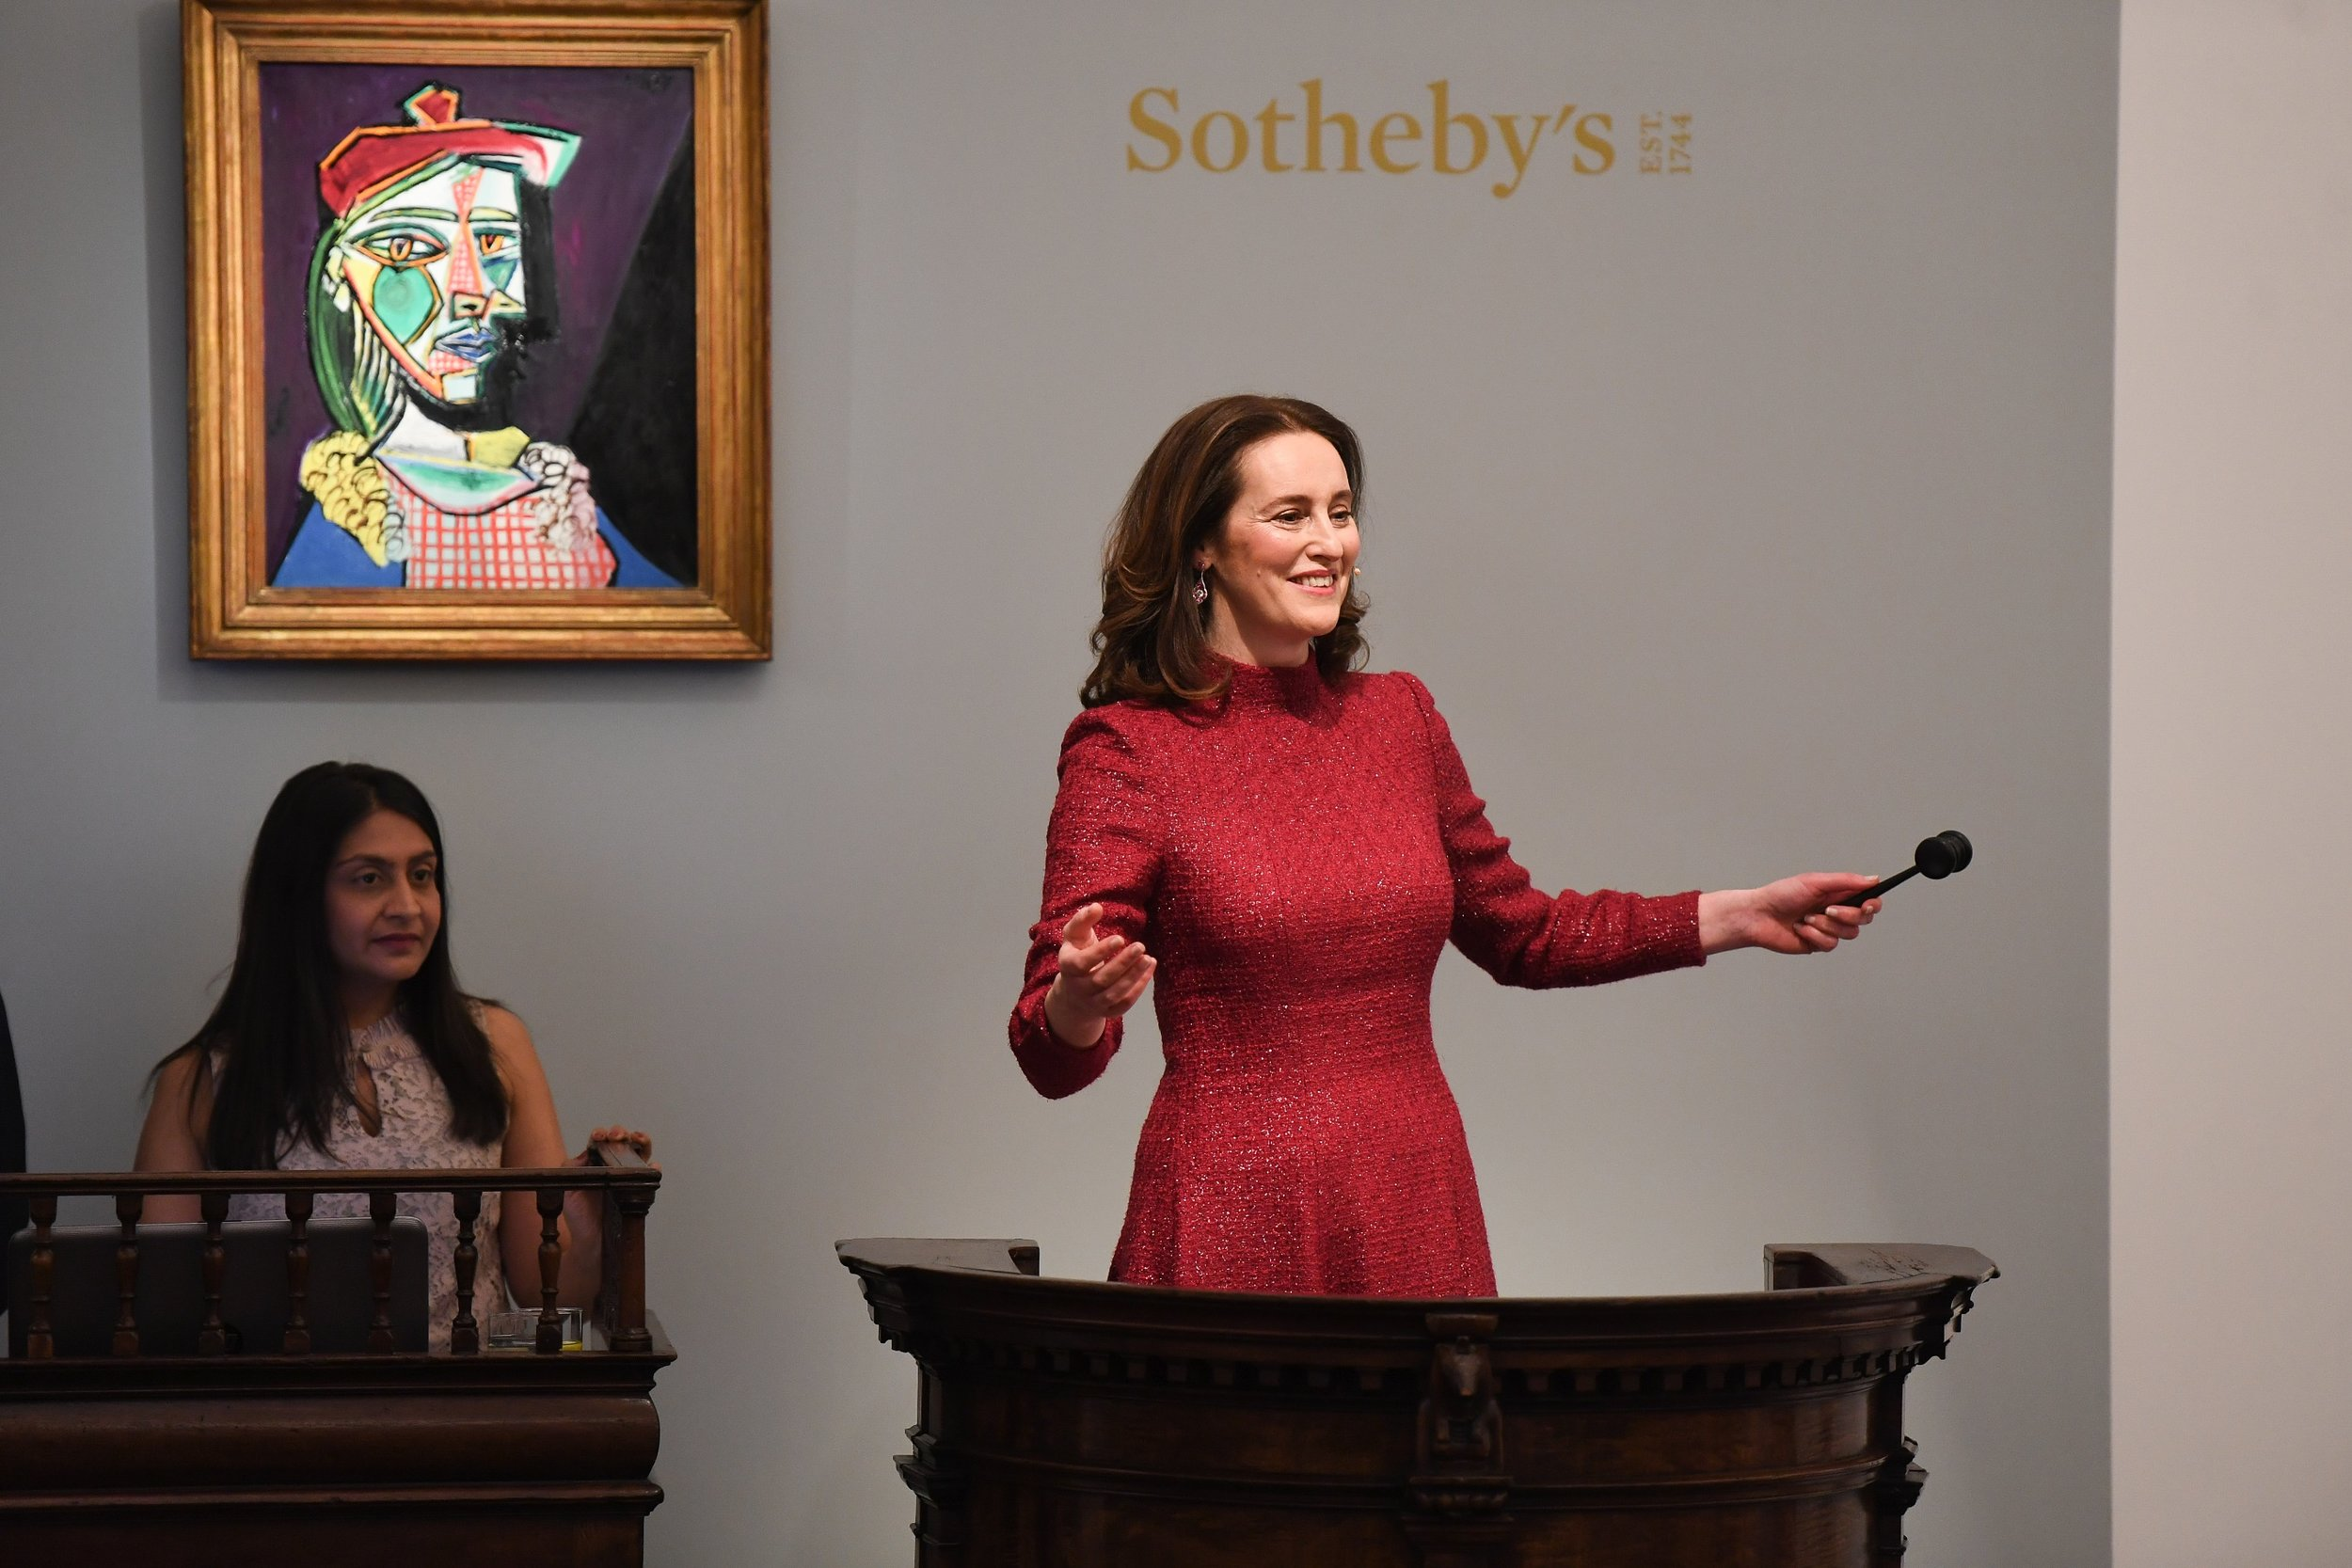 Helena Newman, Global Co-Head of Sotheby's Impressionist & Modern Art Department & Chairman of Sotheby's Europe